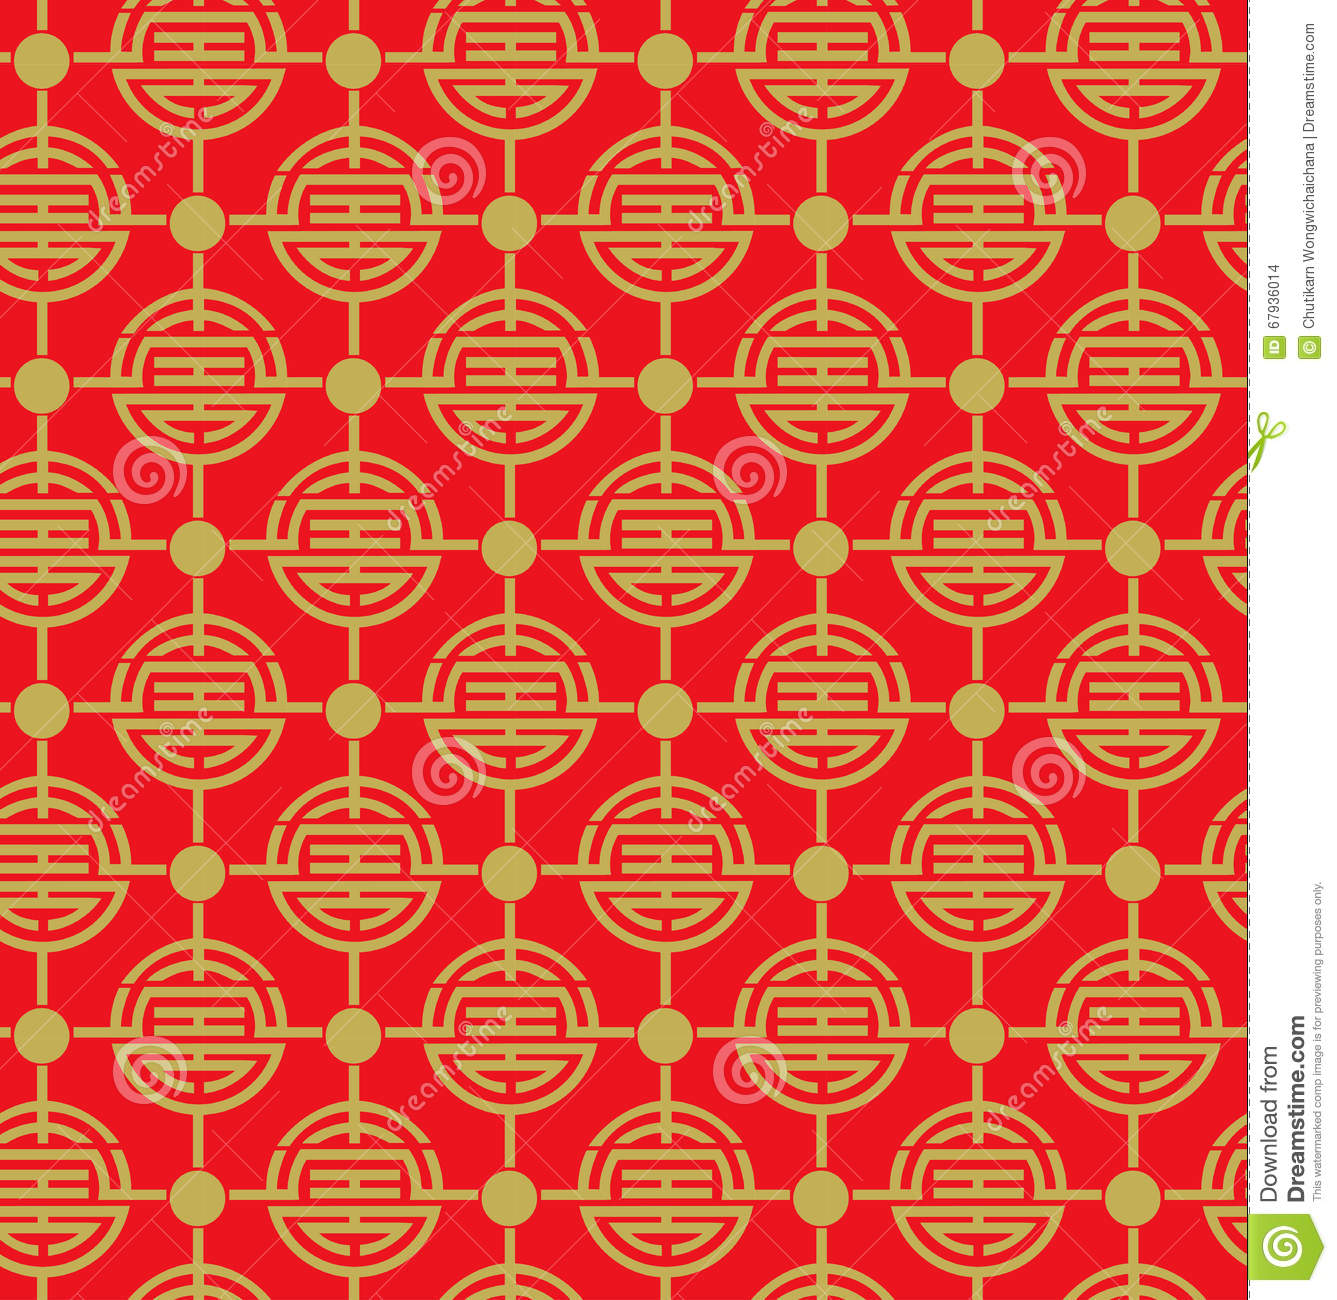 Chinese patterns stock vector. Illustration of classic ...